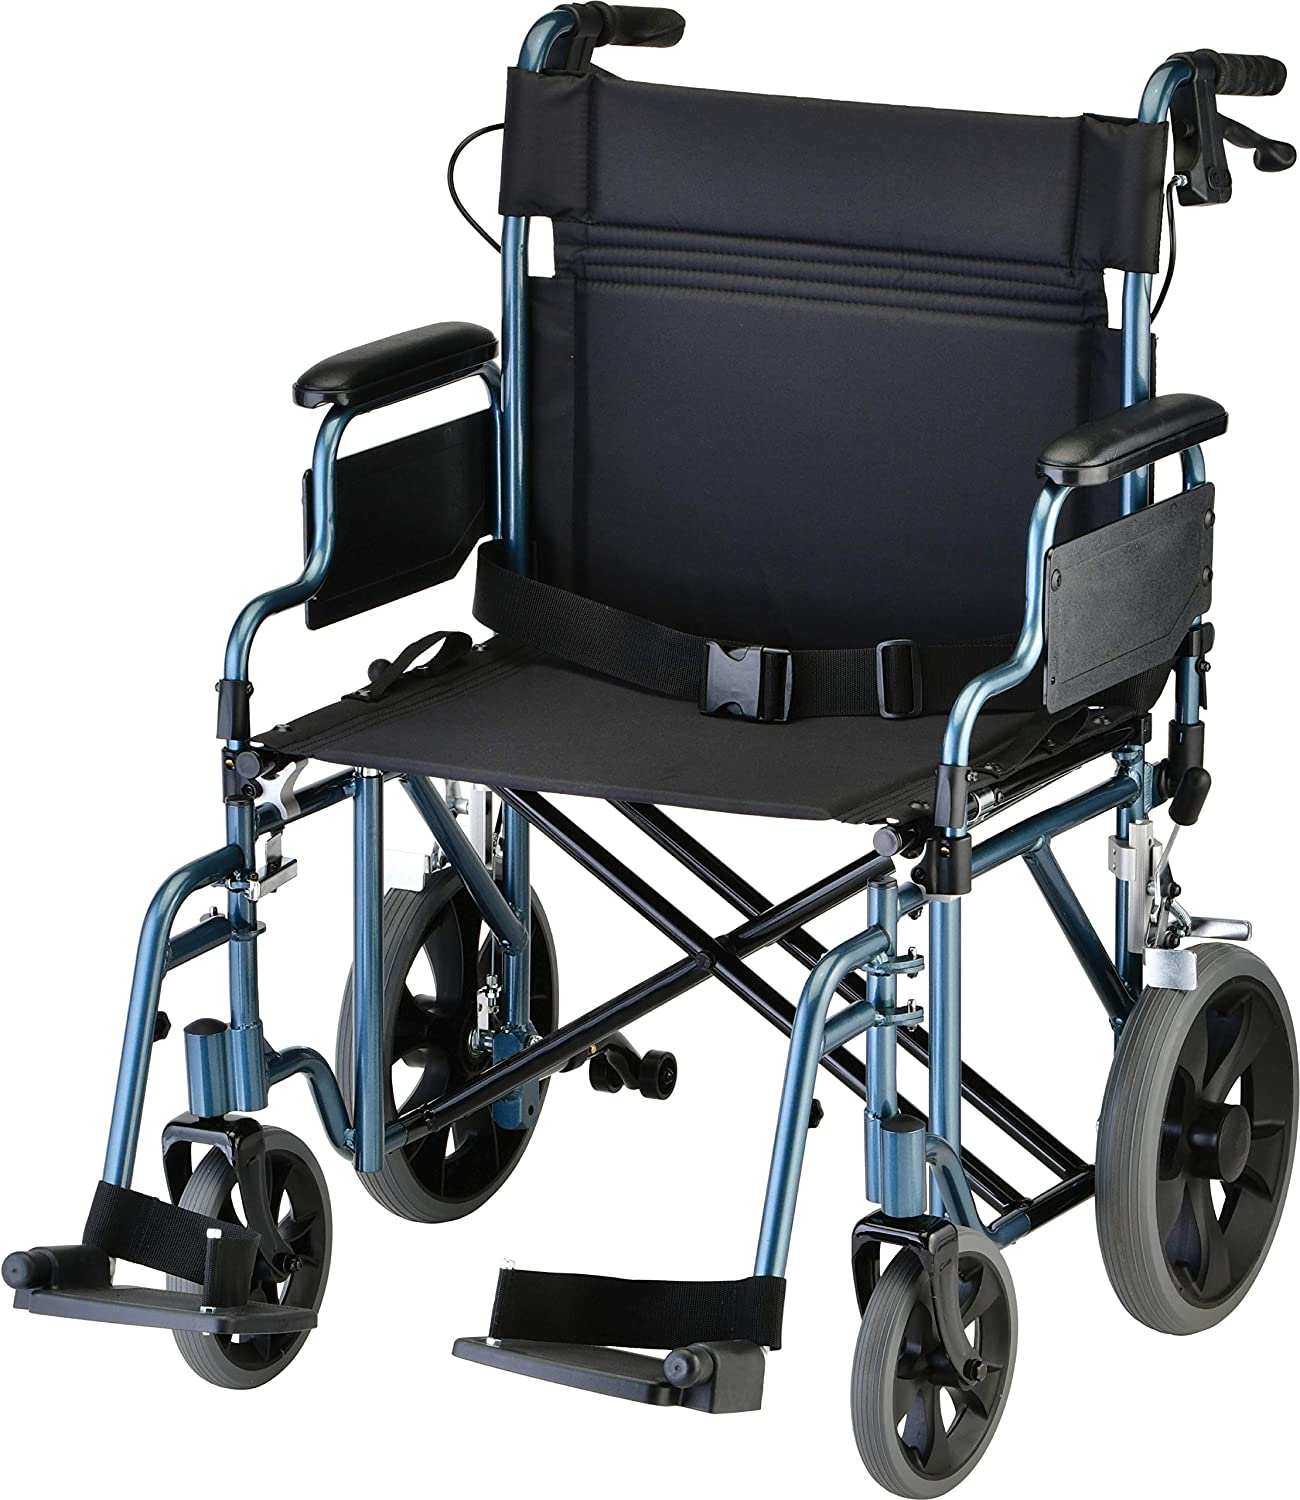 NOVA Bariatric Transport Chair with Locking Hand Brakes, Heavy Duty and Extra Wide Wheelchair with Removable & Flip Up Arms for Easy Transfer, Anti-Tippers Included, 400 lb. Weight Capacity, Blue: Health & Personal Care